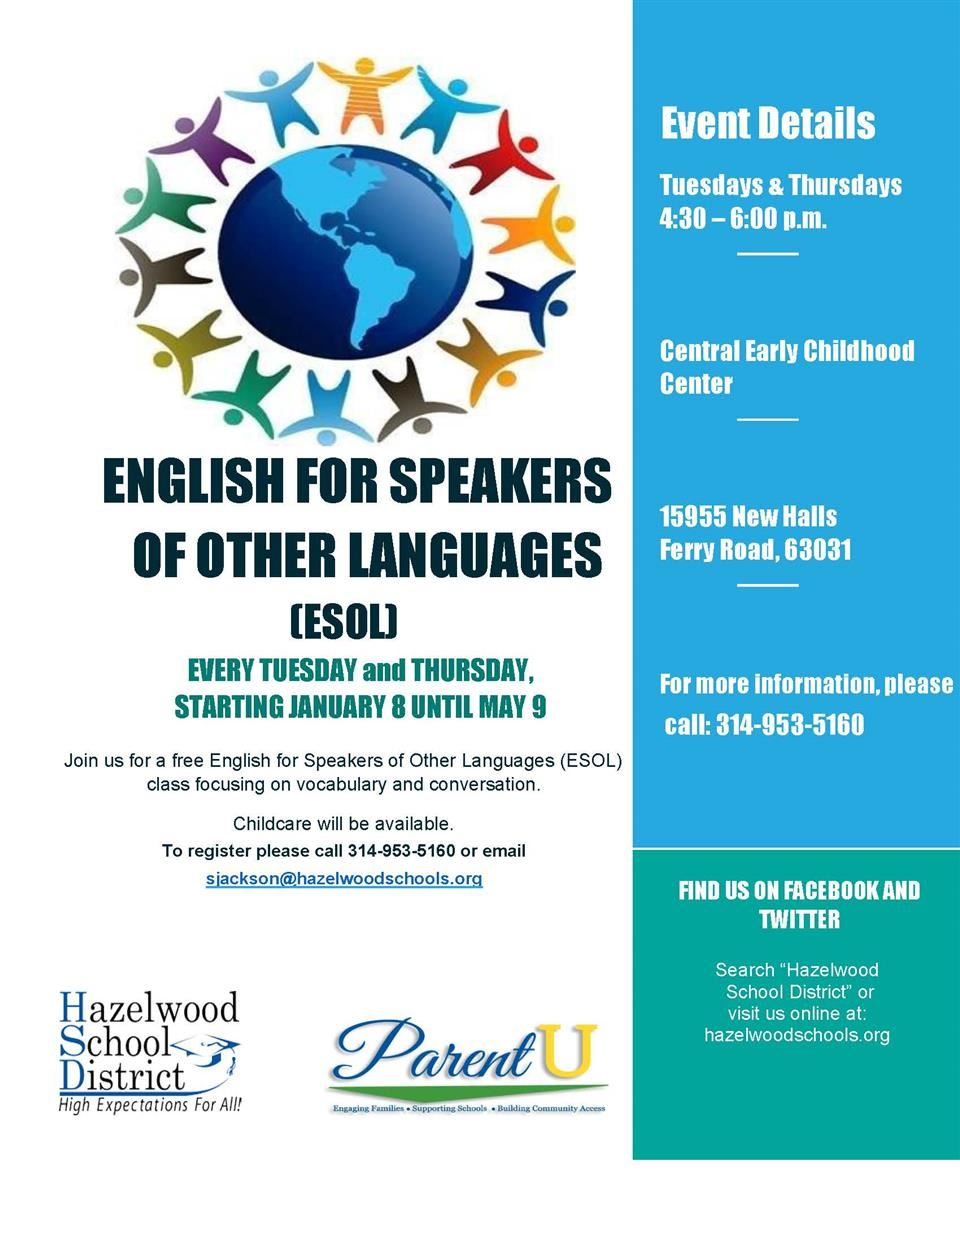 English for Speakers of Other Languages Flyer